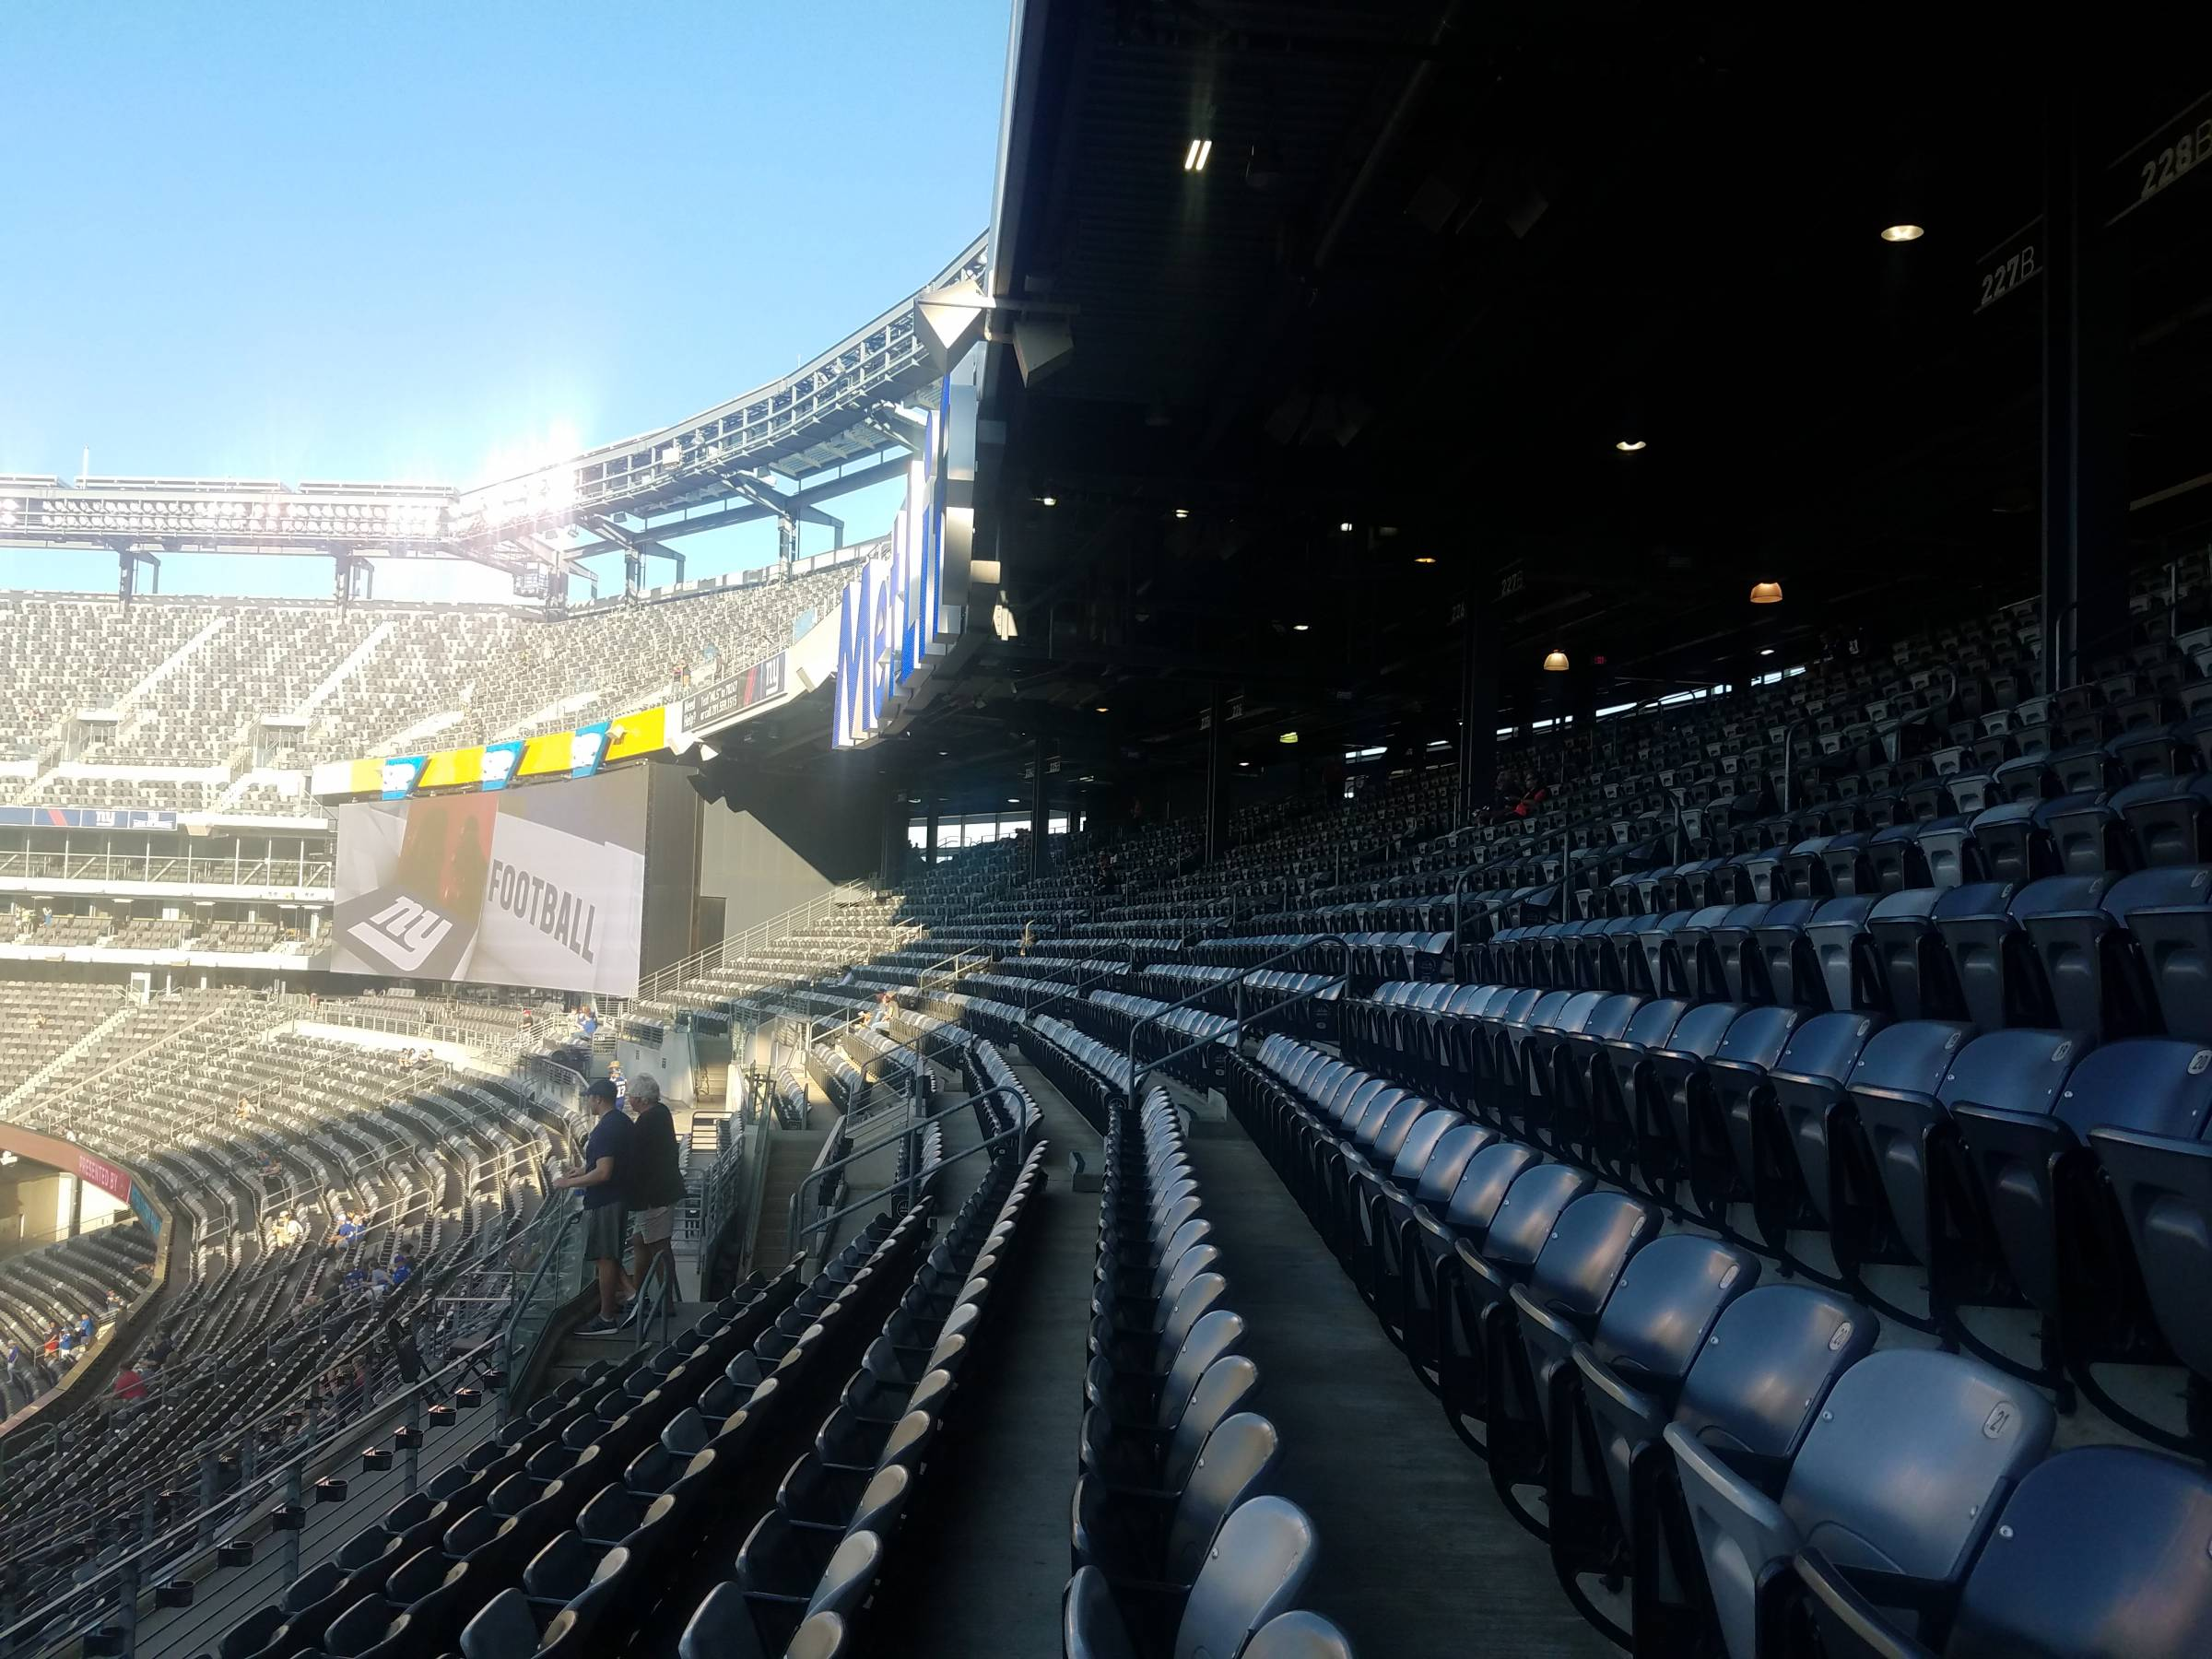 2f01cd6abc8 The upper endzone seats of MetLife Stadium are covered in rows five and  above.